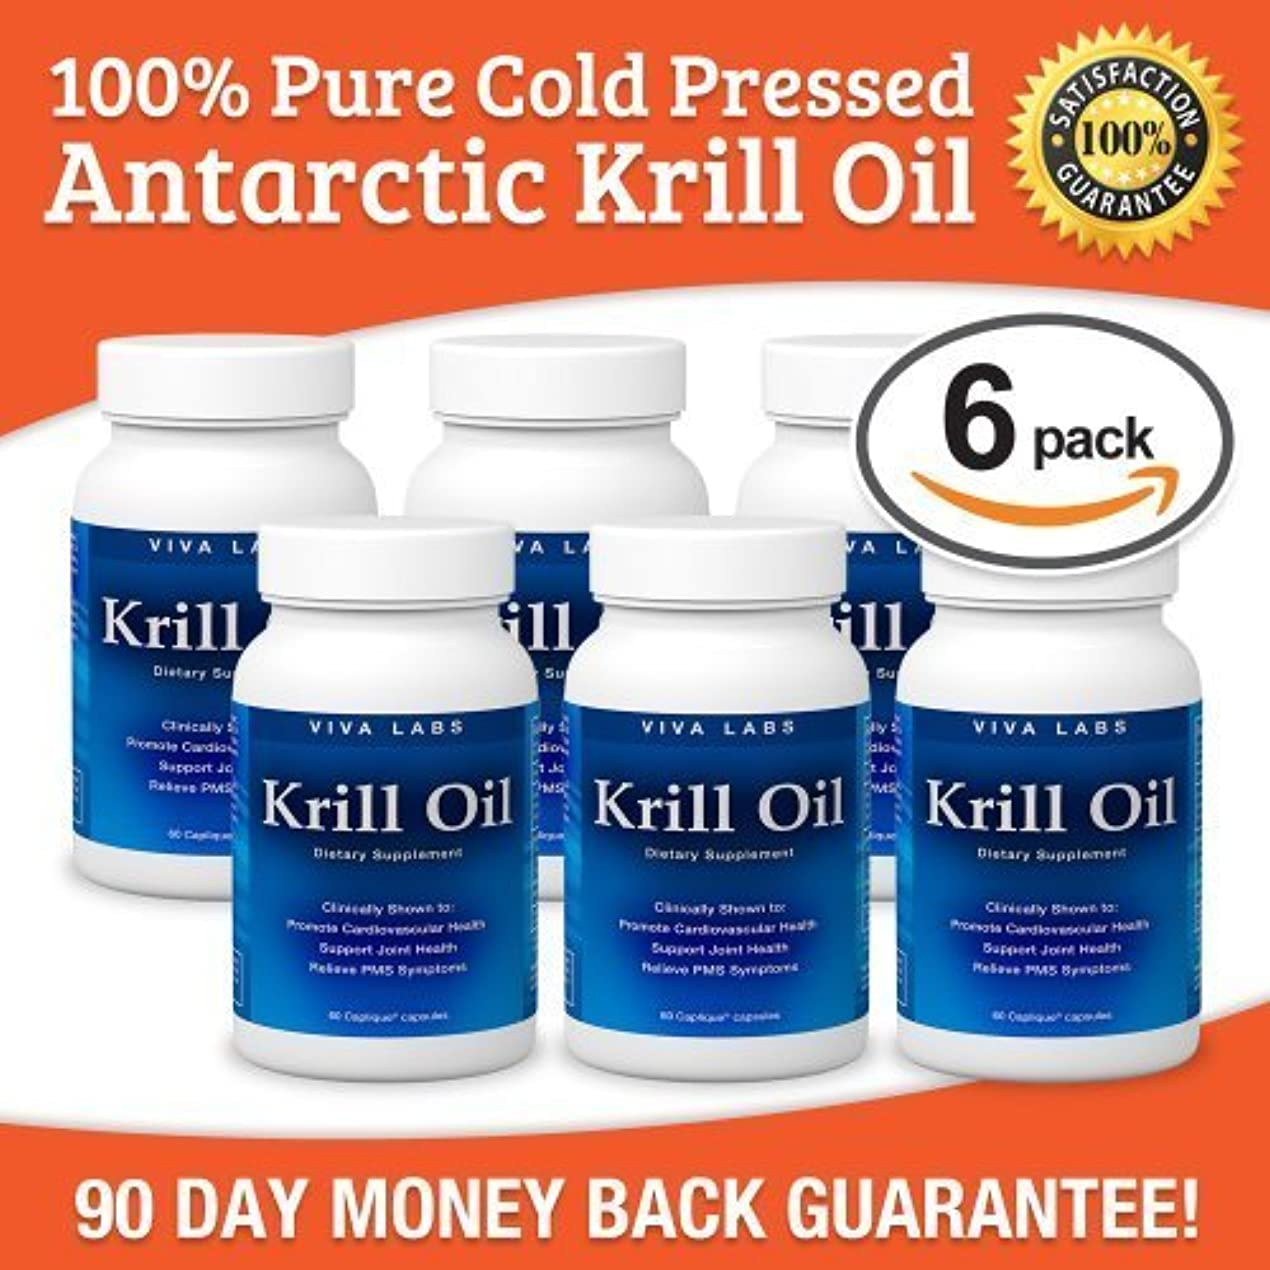 Everest Nutrition Krill Oil - 100% Pure Cold Pressed Antarctic Krill Oil - More Omega-3's: Highest Levels of DHA...